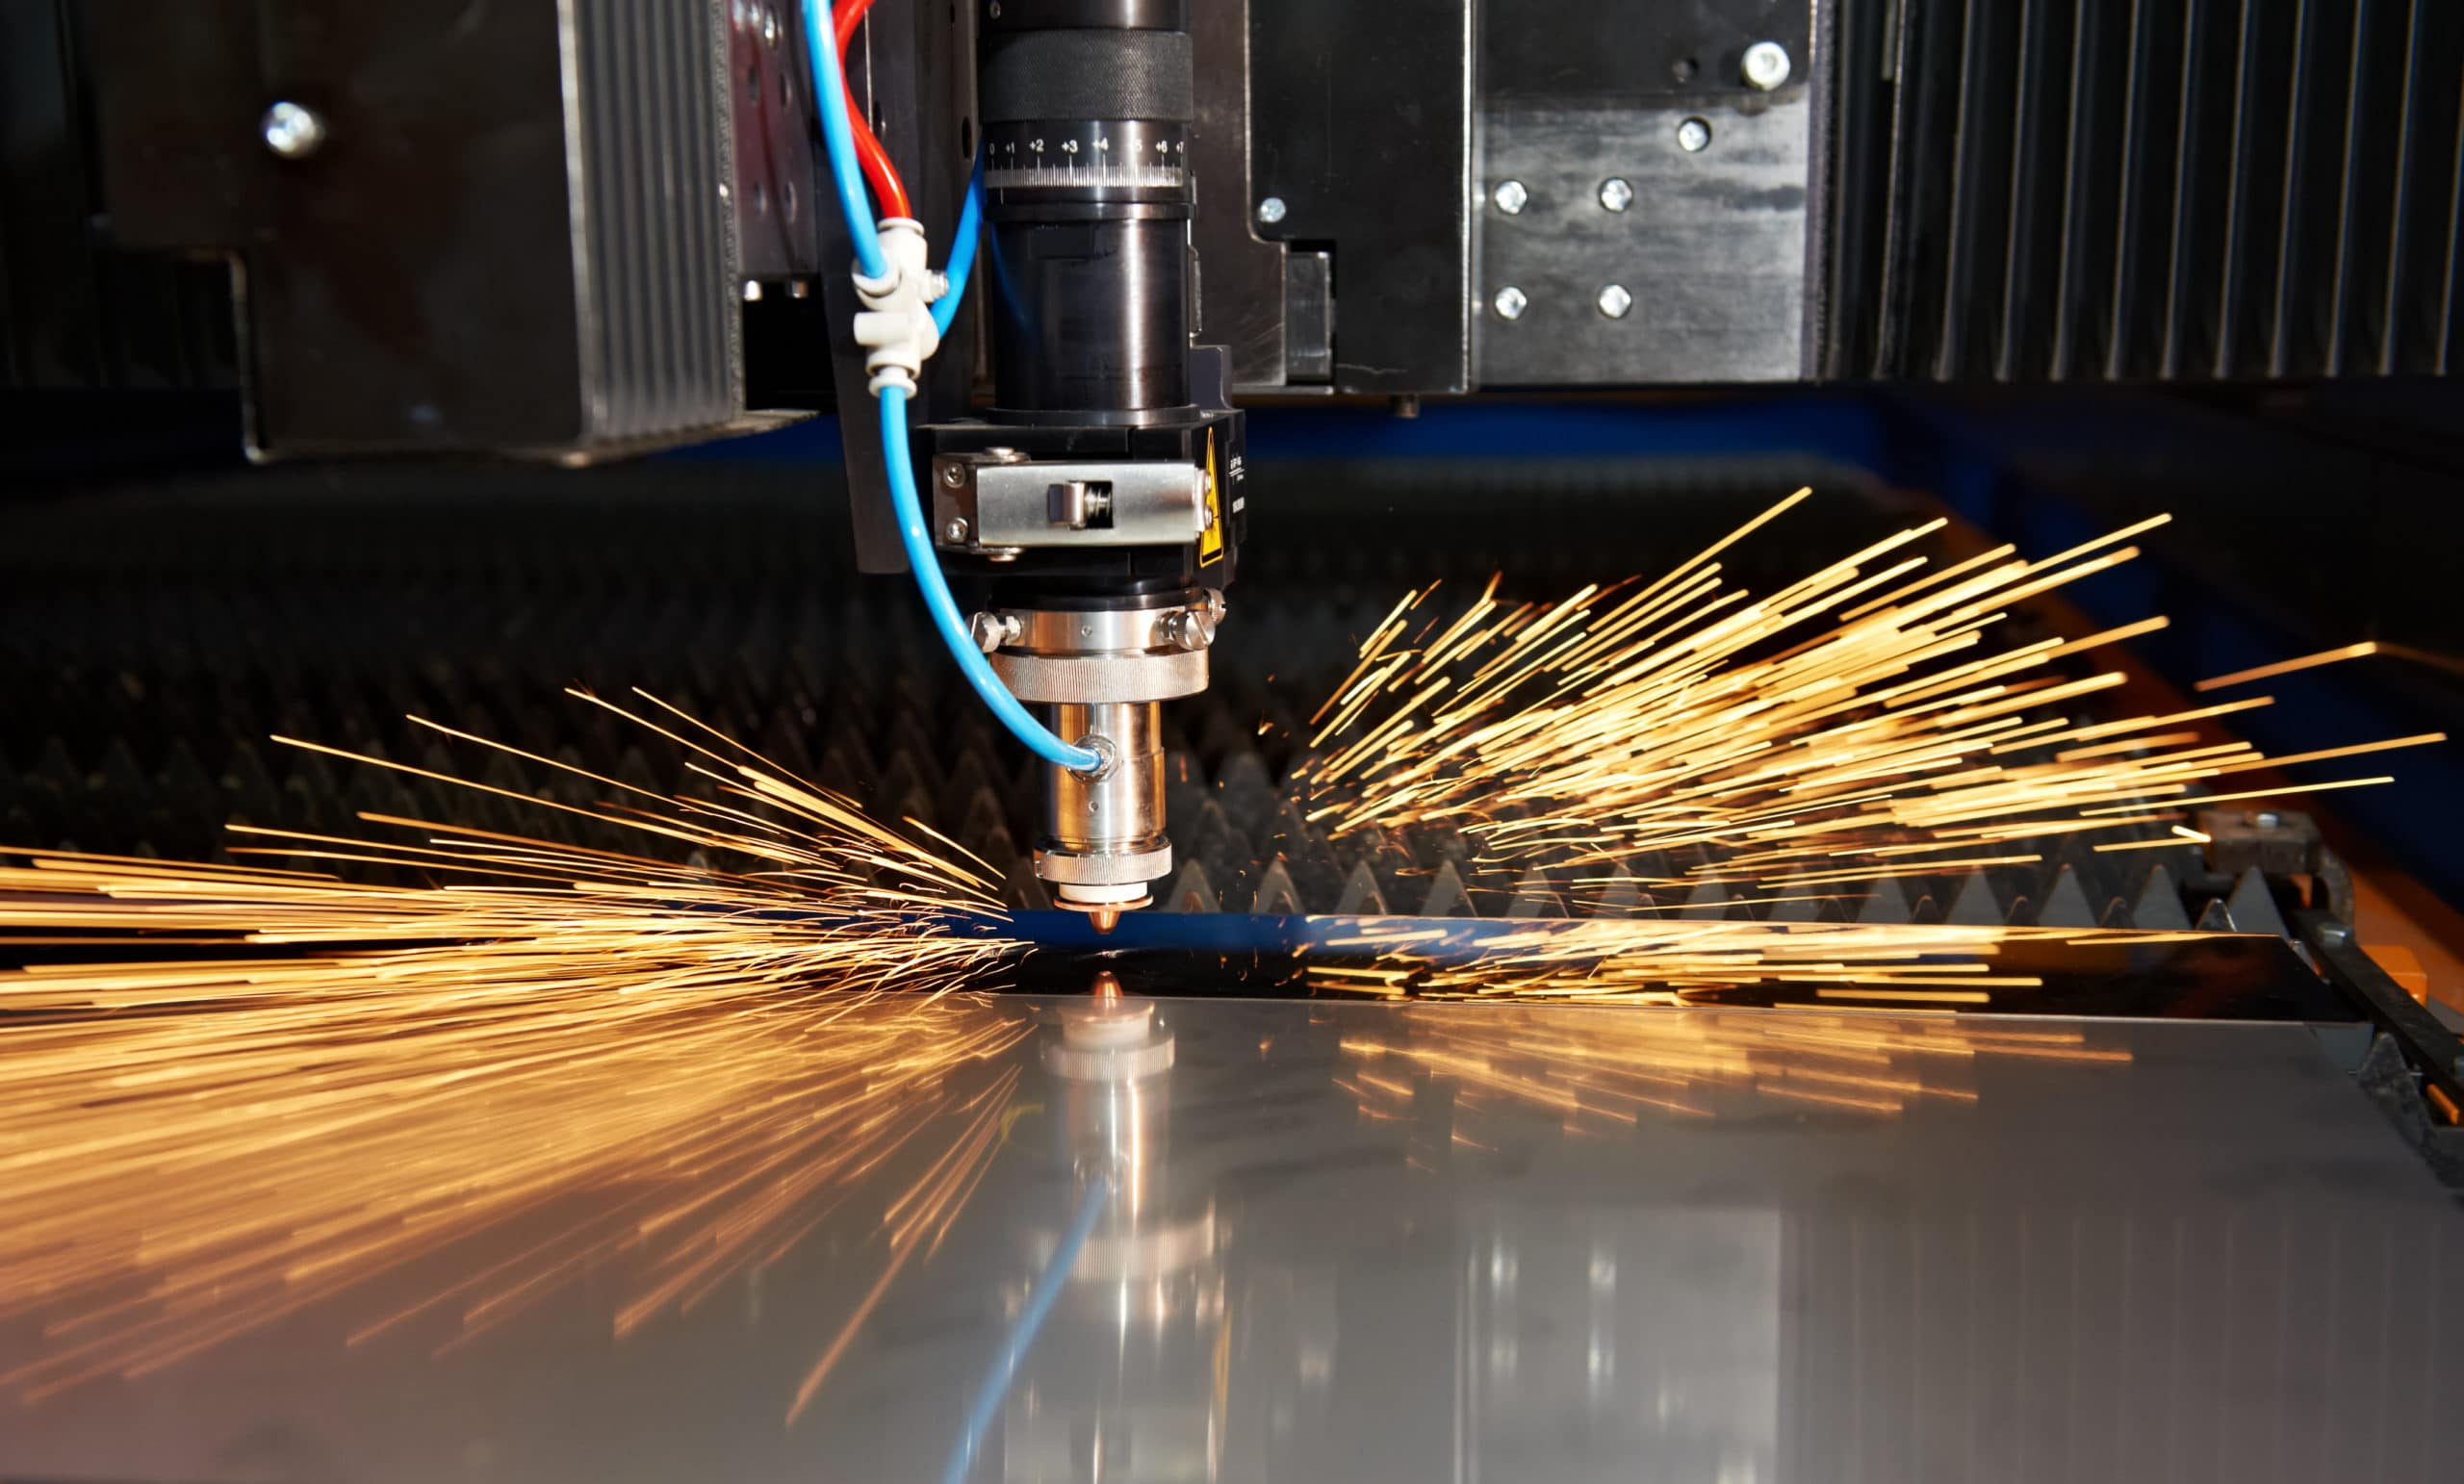 Fabrication Business For Sale Michigan  Laser & Welding